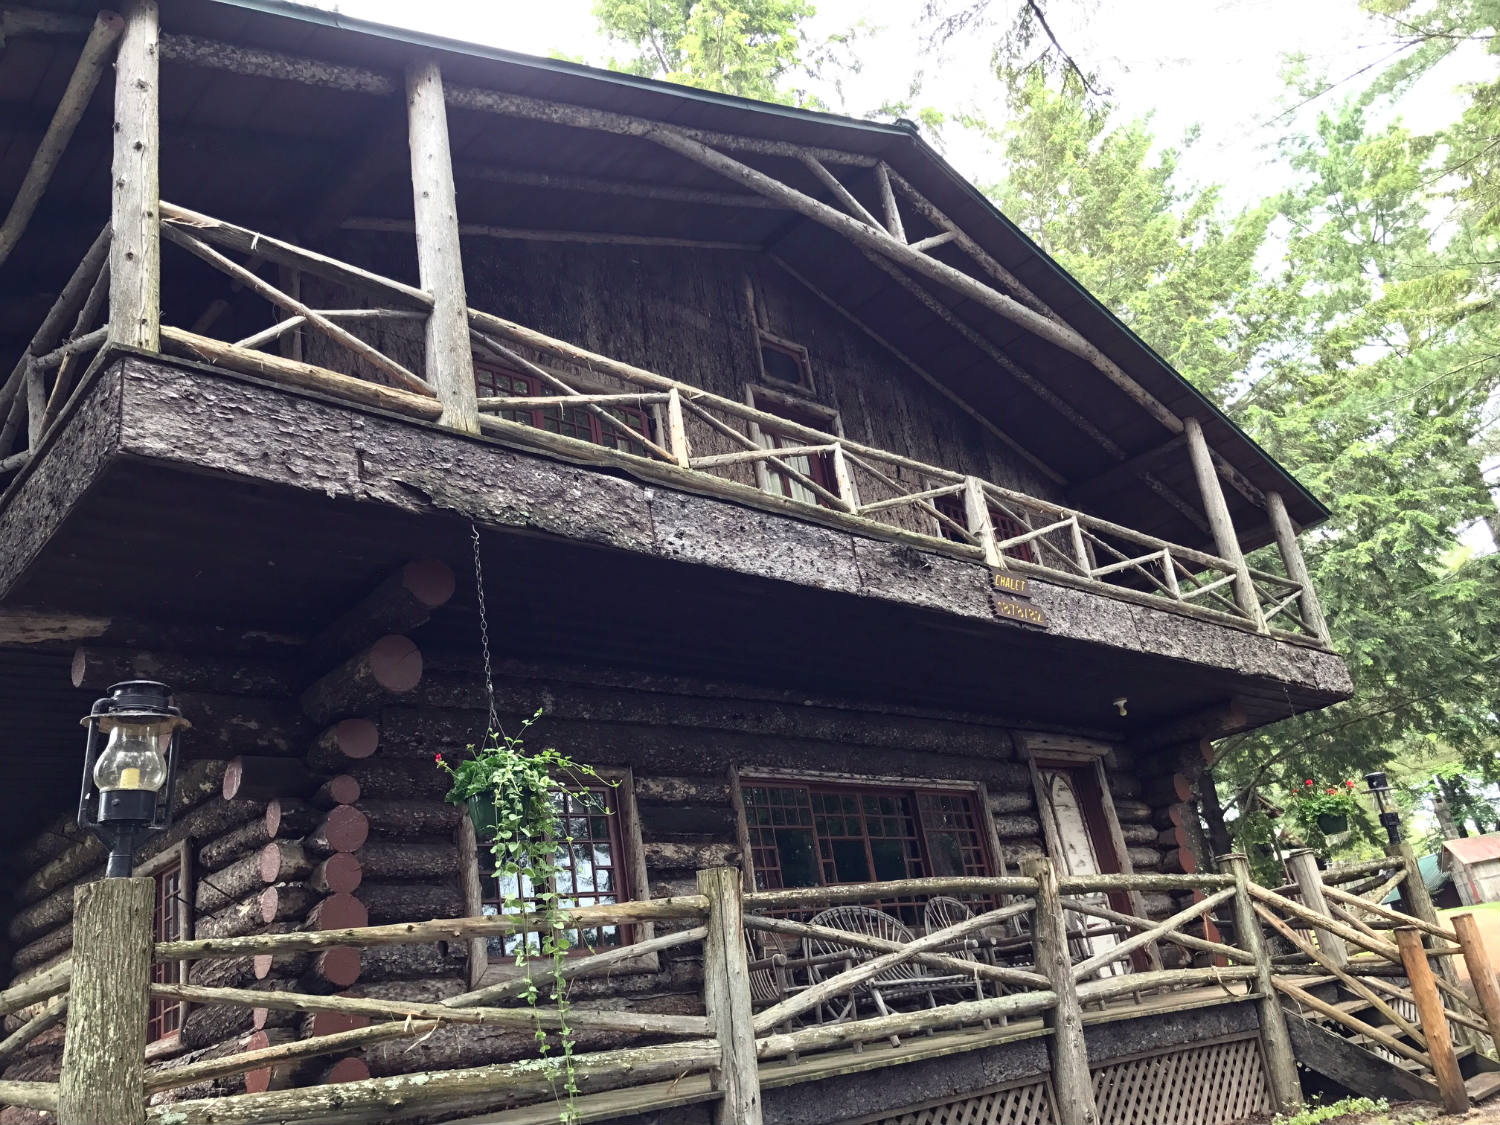 The Chalet Porches at Camp Pine Knot in the Adirondacks